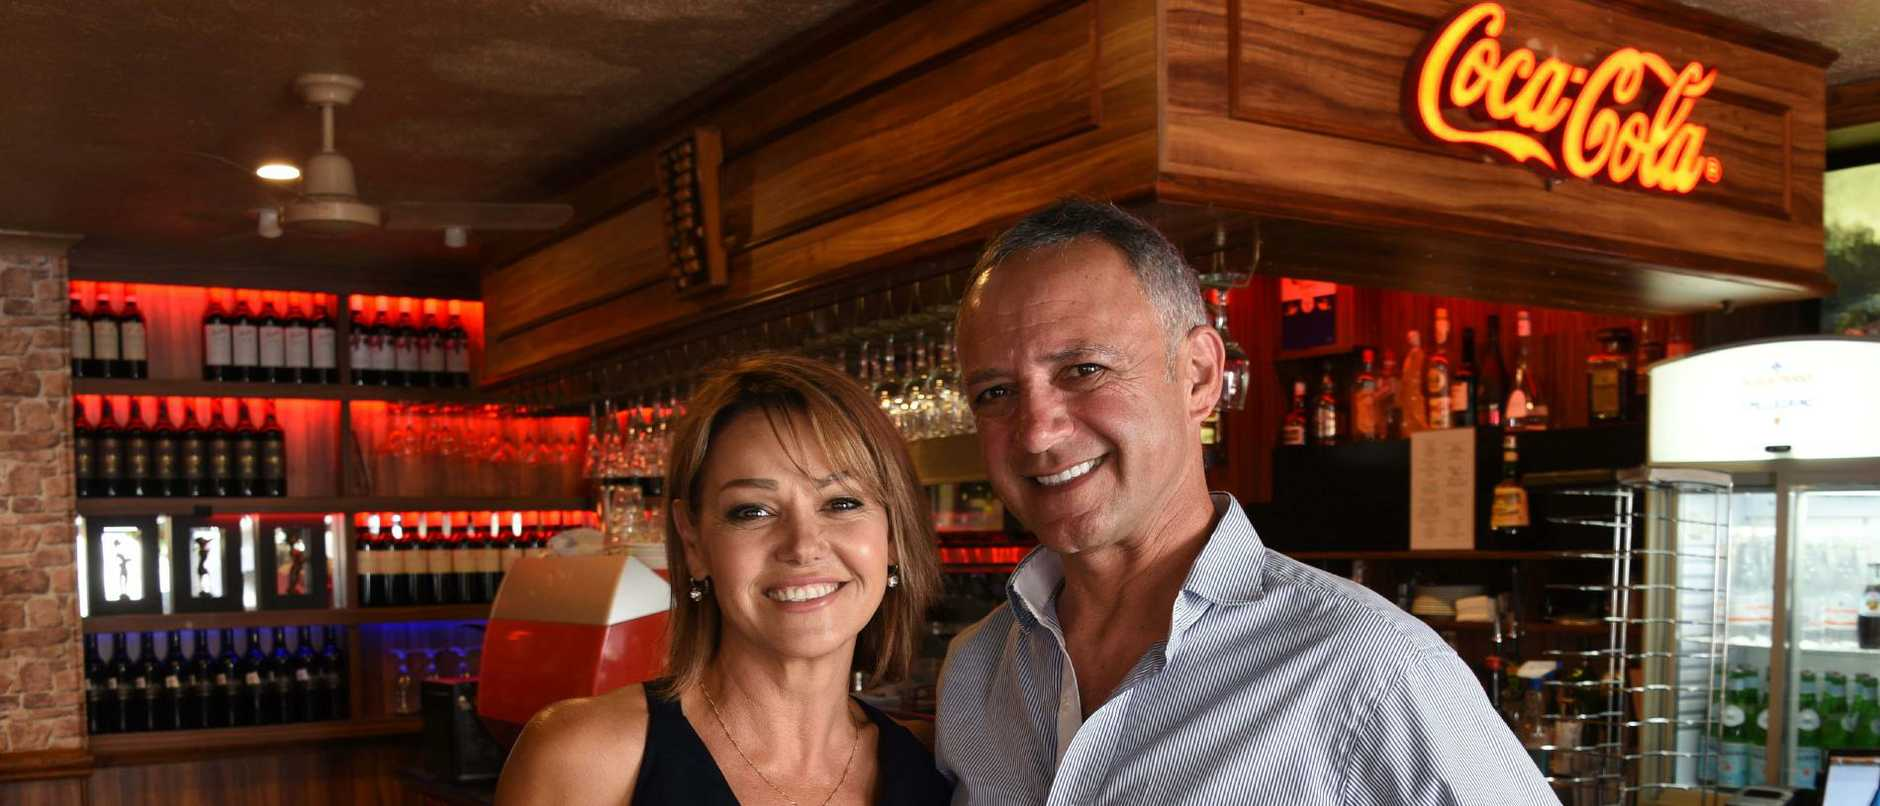 Costa D'Oro owners Michael and Nuccia Fusco — Mr Fusco says IndyCars crowds doubled turnover in comparison to Supercars. Photo: Steve Holland